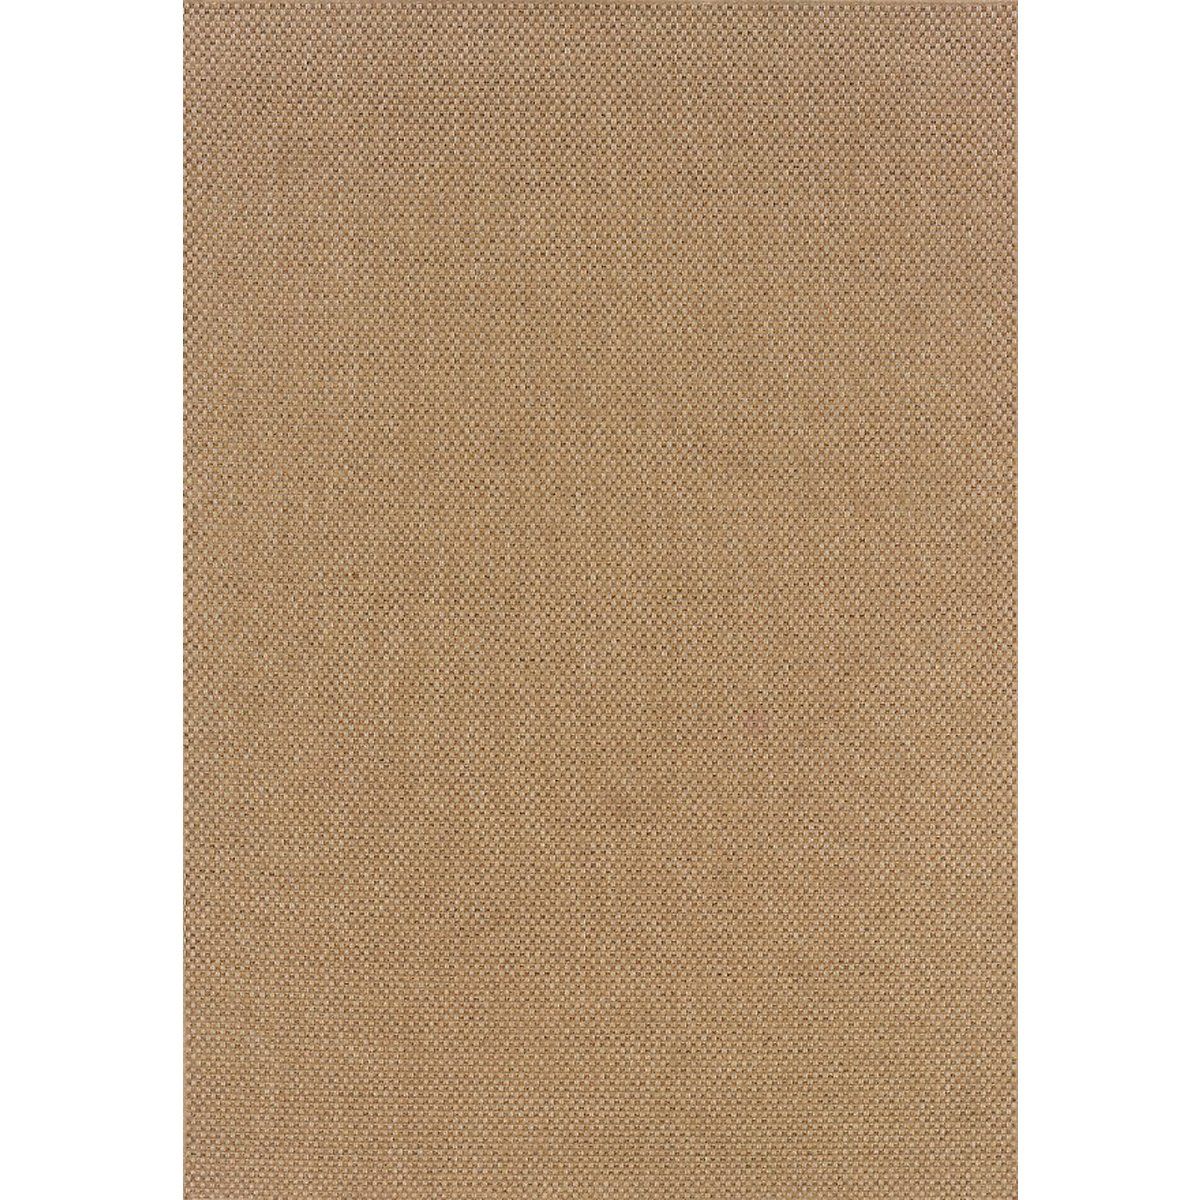 Karavia Khaki Poly Indoor/Outdoor 5x8 Area Rug